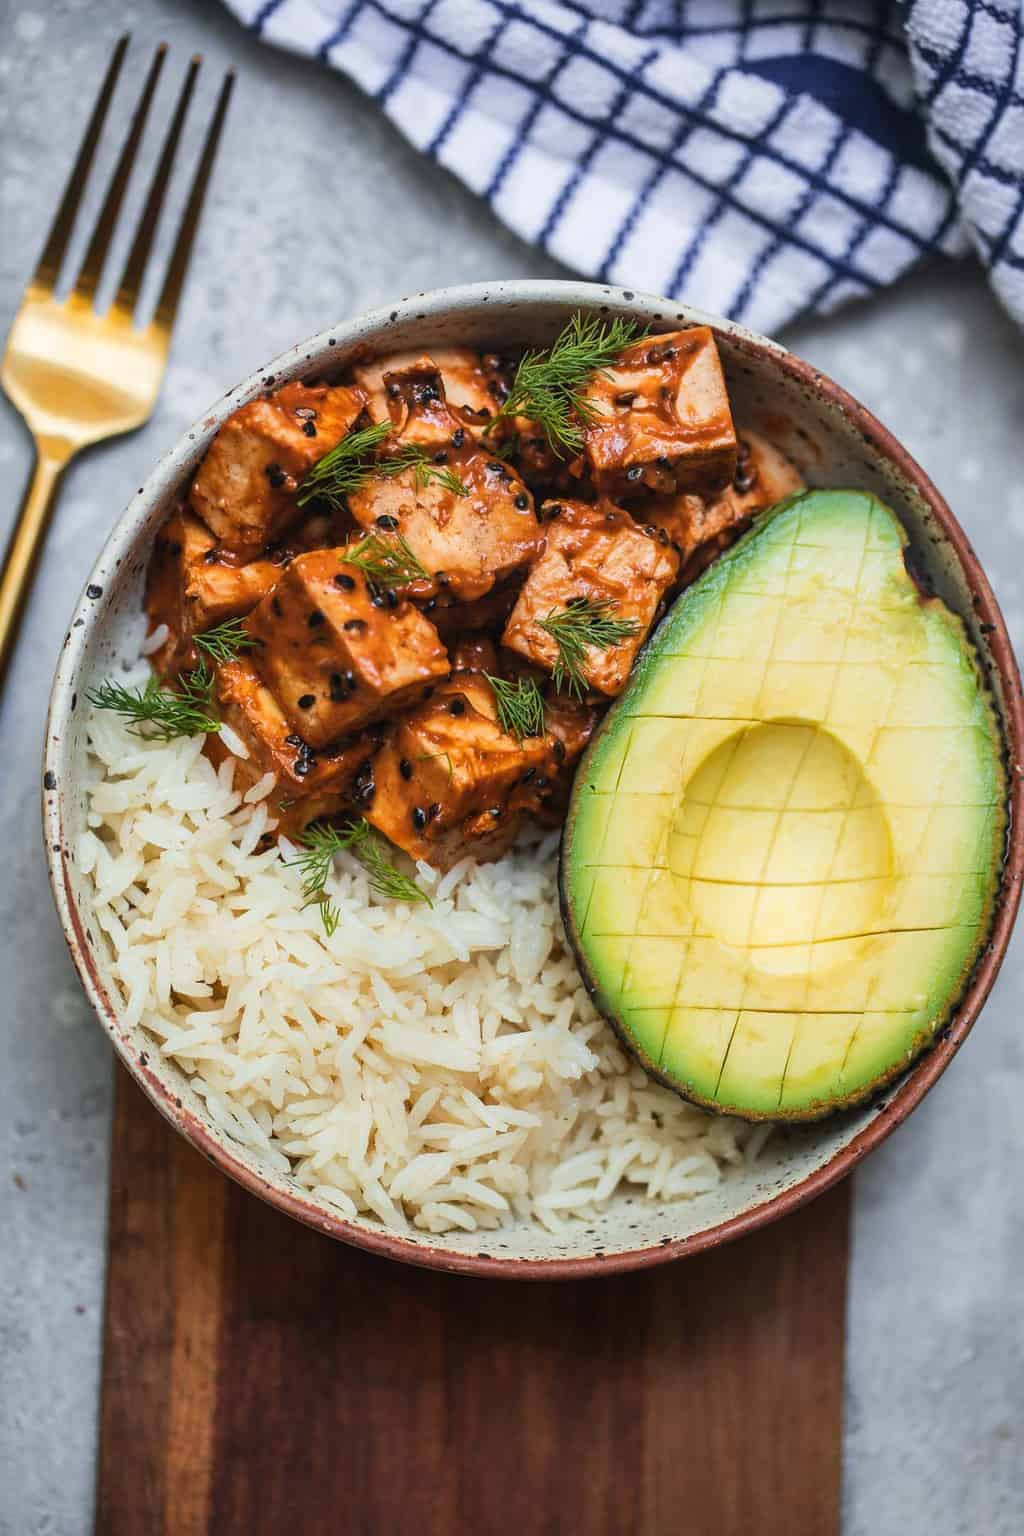 Bowl with tofu, avocado and rice on a chopping board